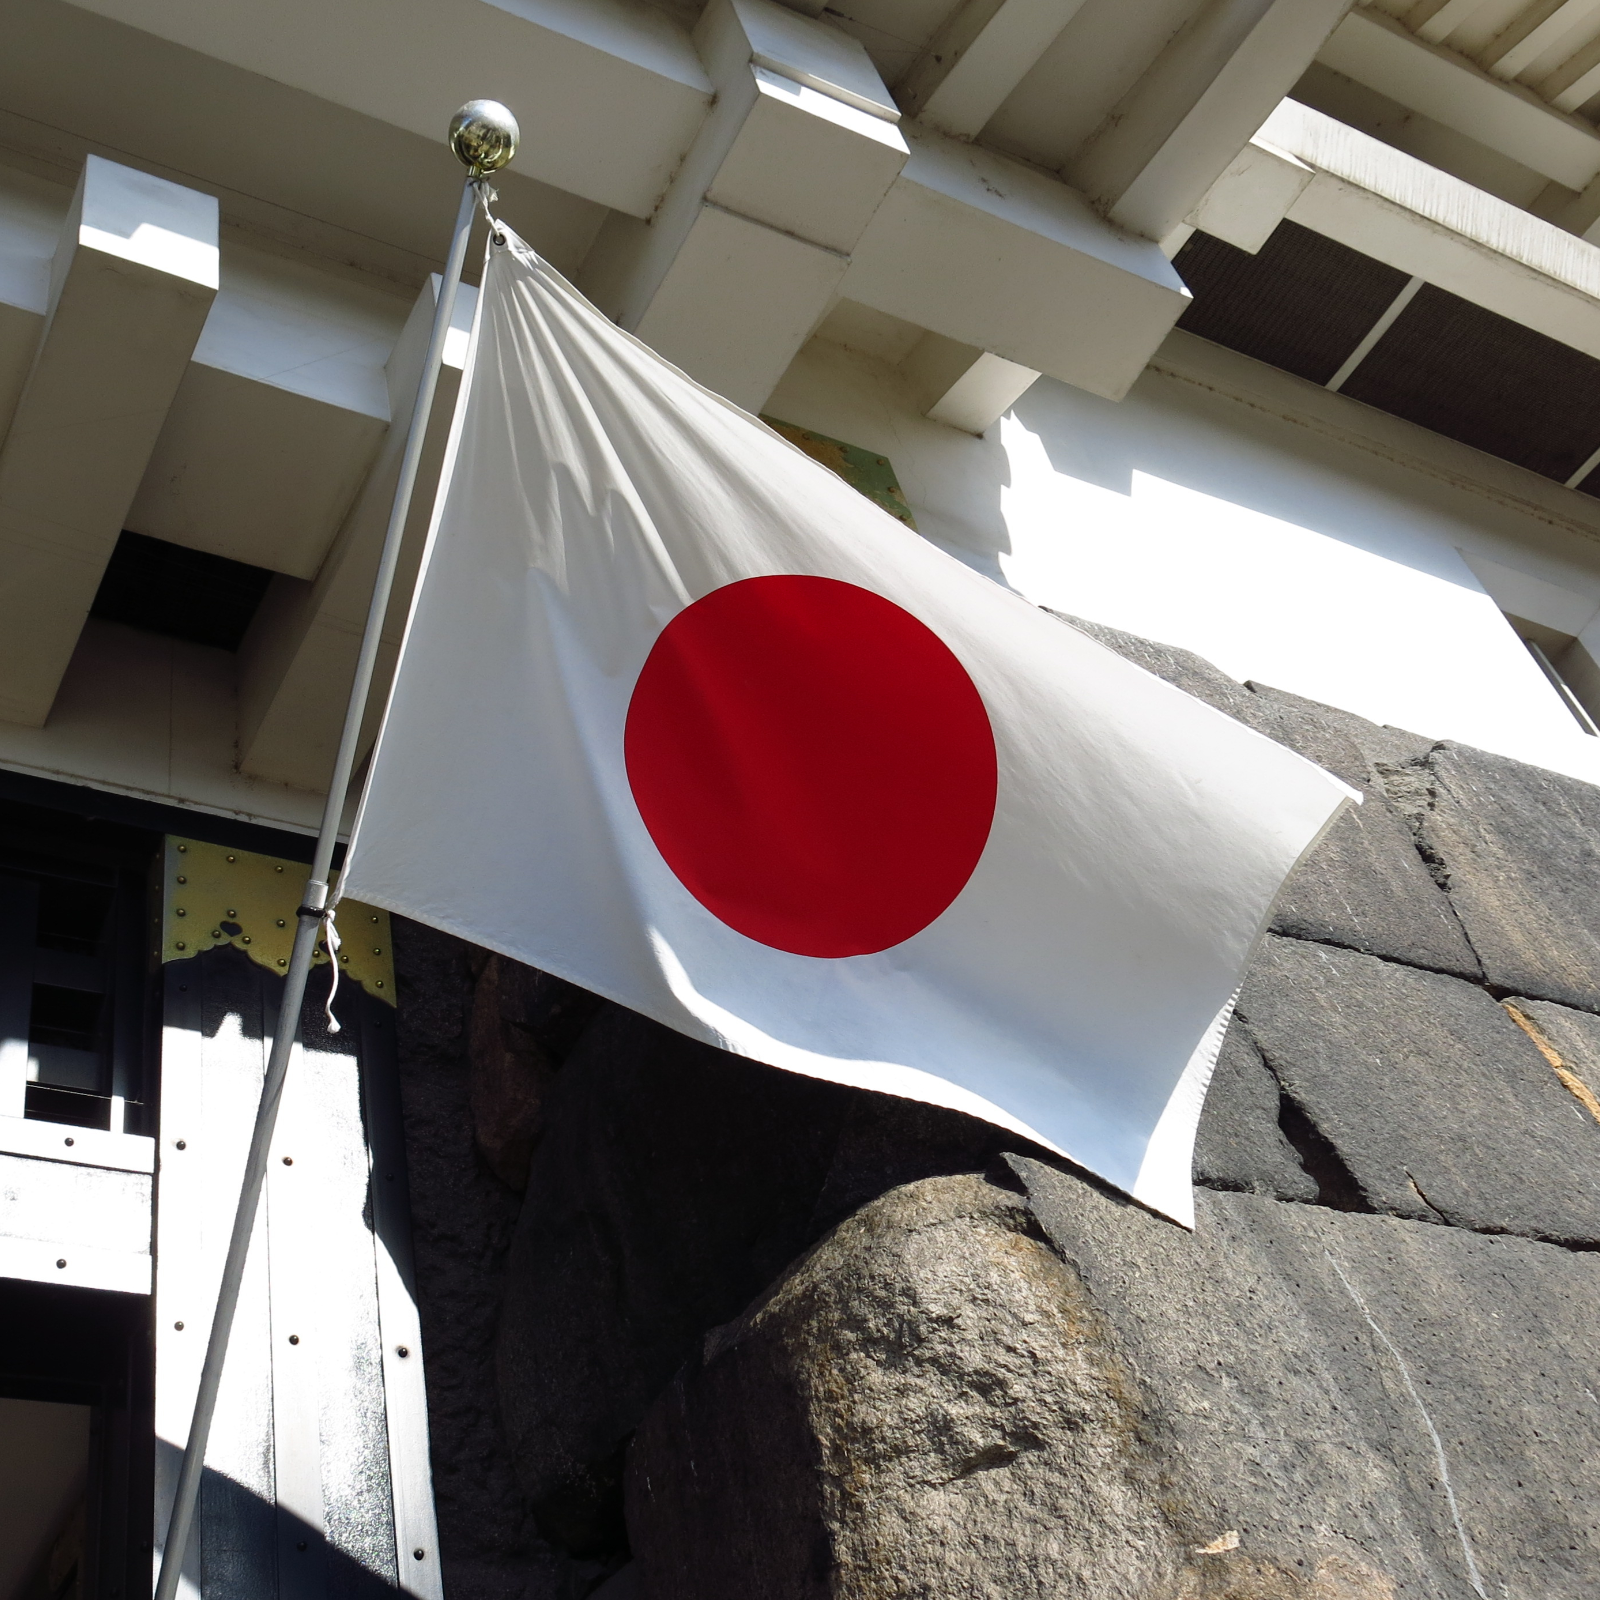 Japanese Regulators Urgently Respond to Zaif's Hack